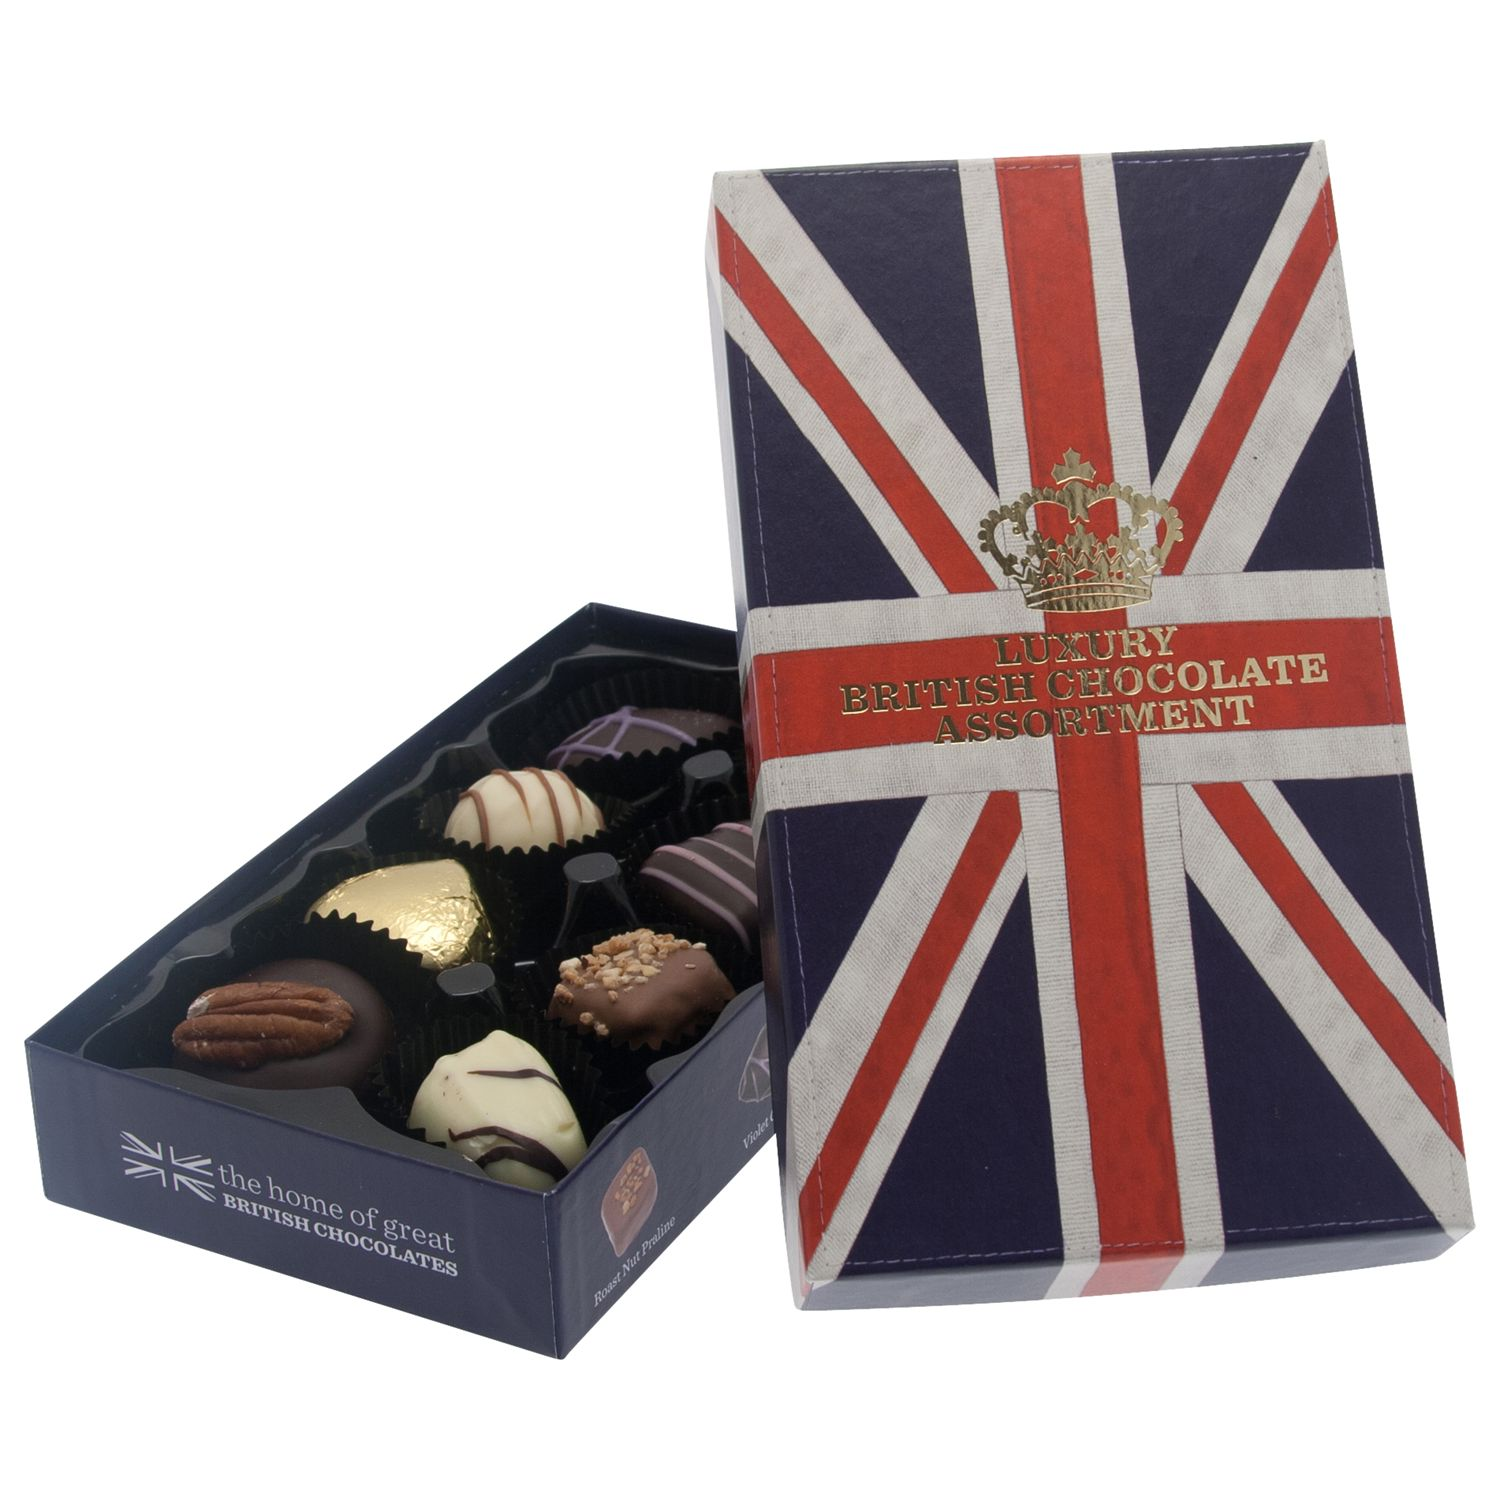 House of Dorchester House of Dorchester Flying the Flag Luxury Assorted Chocolate Box, 100g